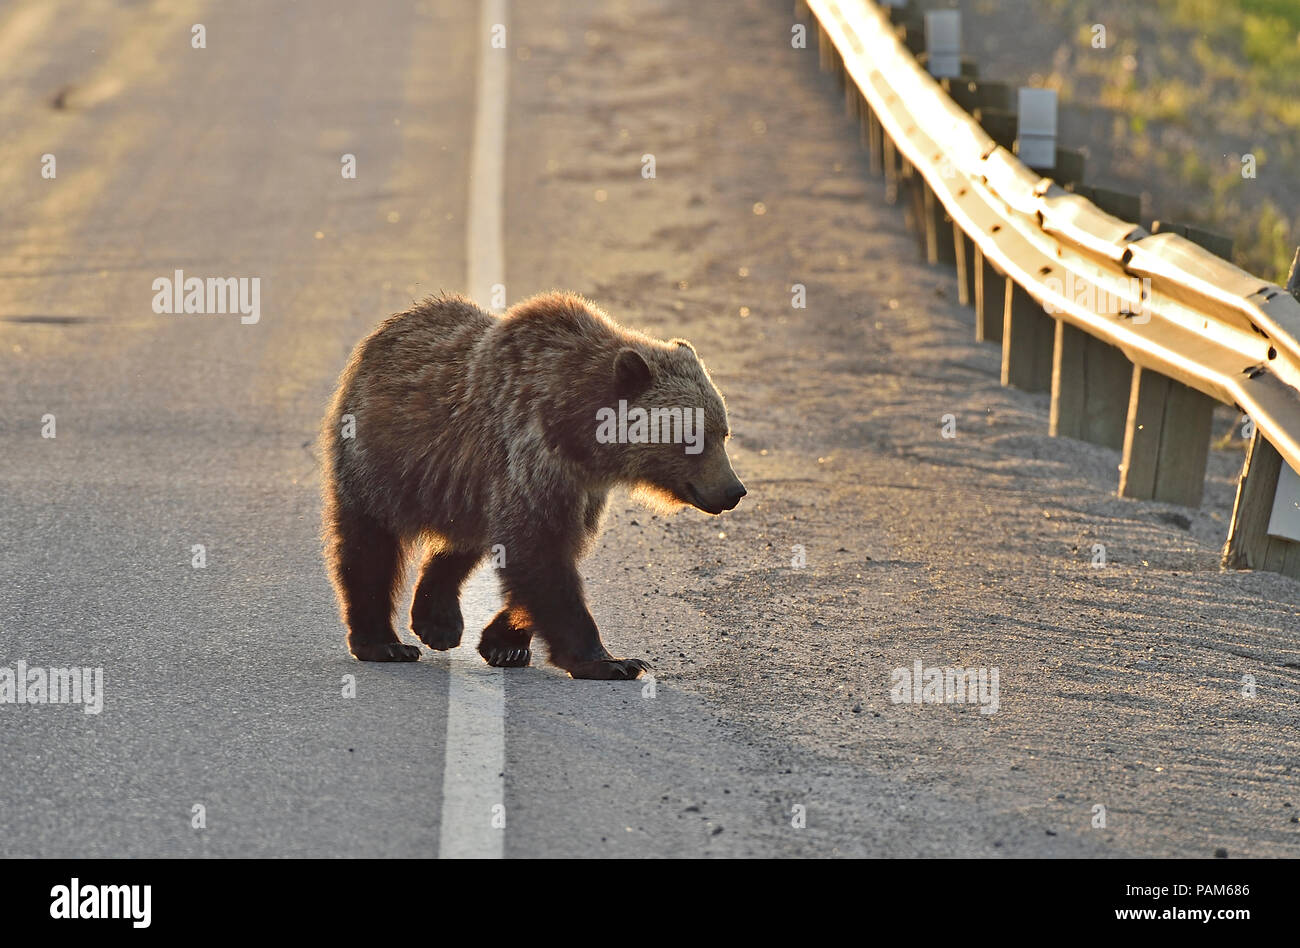 Grizzly bear walking - photo#52